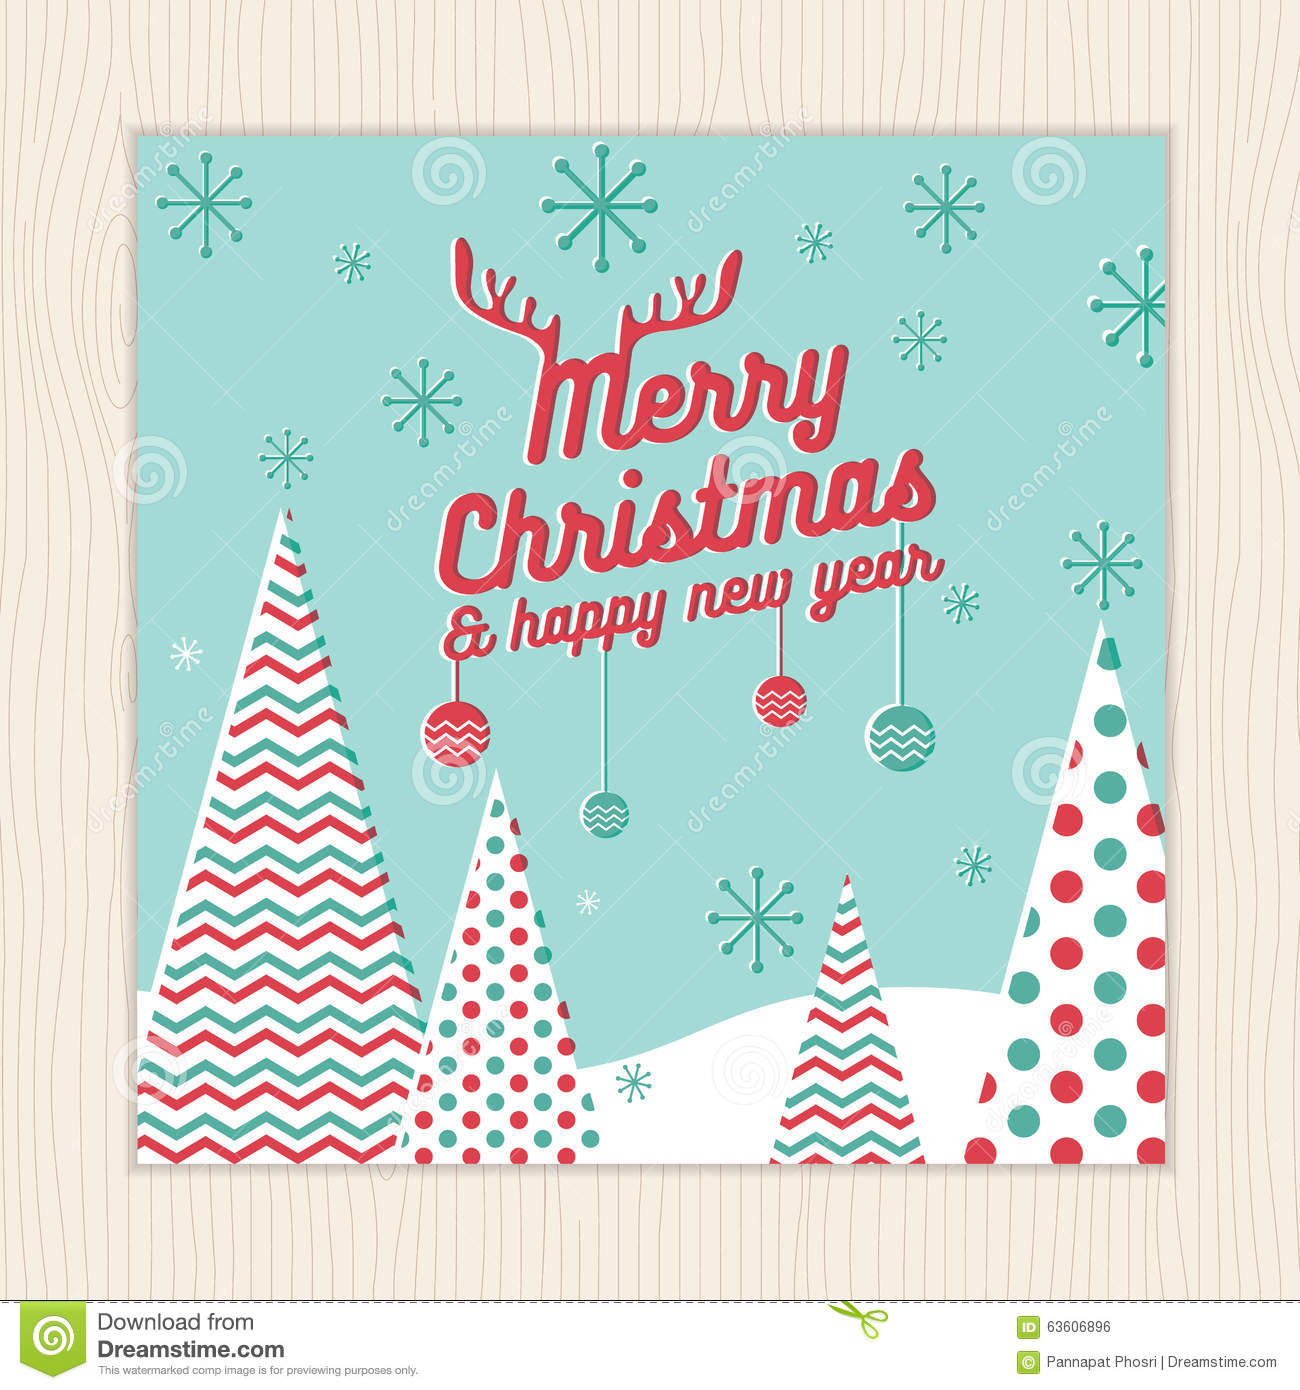 merry christmas happy new year card or poster template with christmas tree background in green